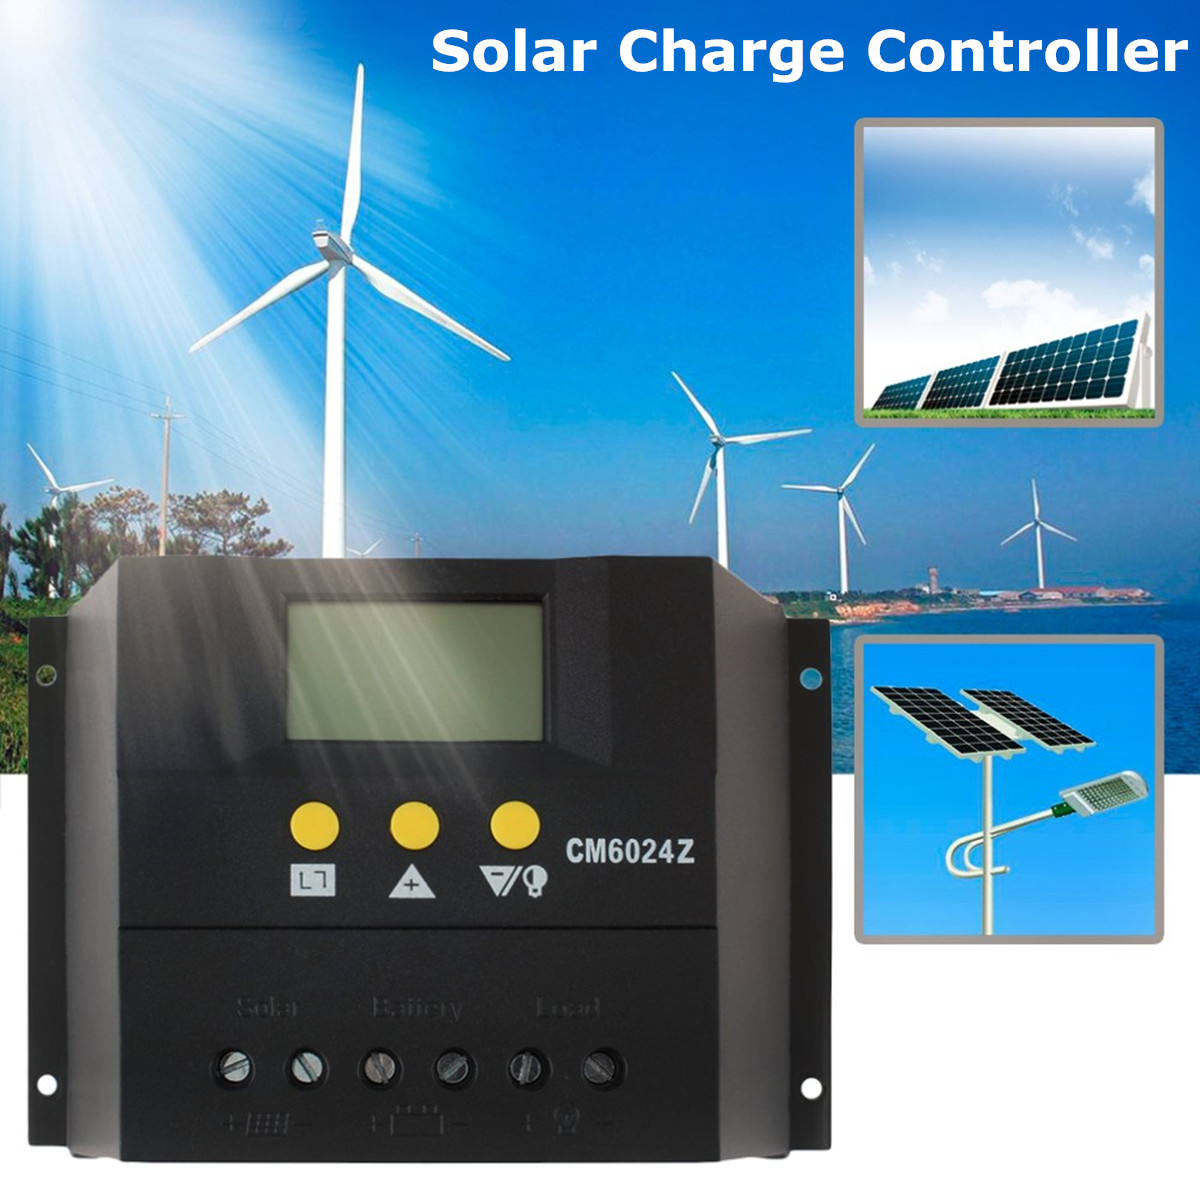 Solar Charge Controller Auto PWM Battery Charger 12V 24V 1920W MAX PWM Charging Mode 80A Regulator ABS Short-circuit Protection max short